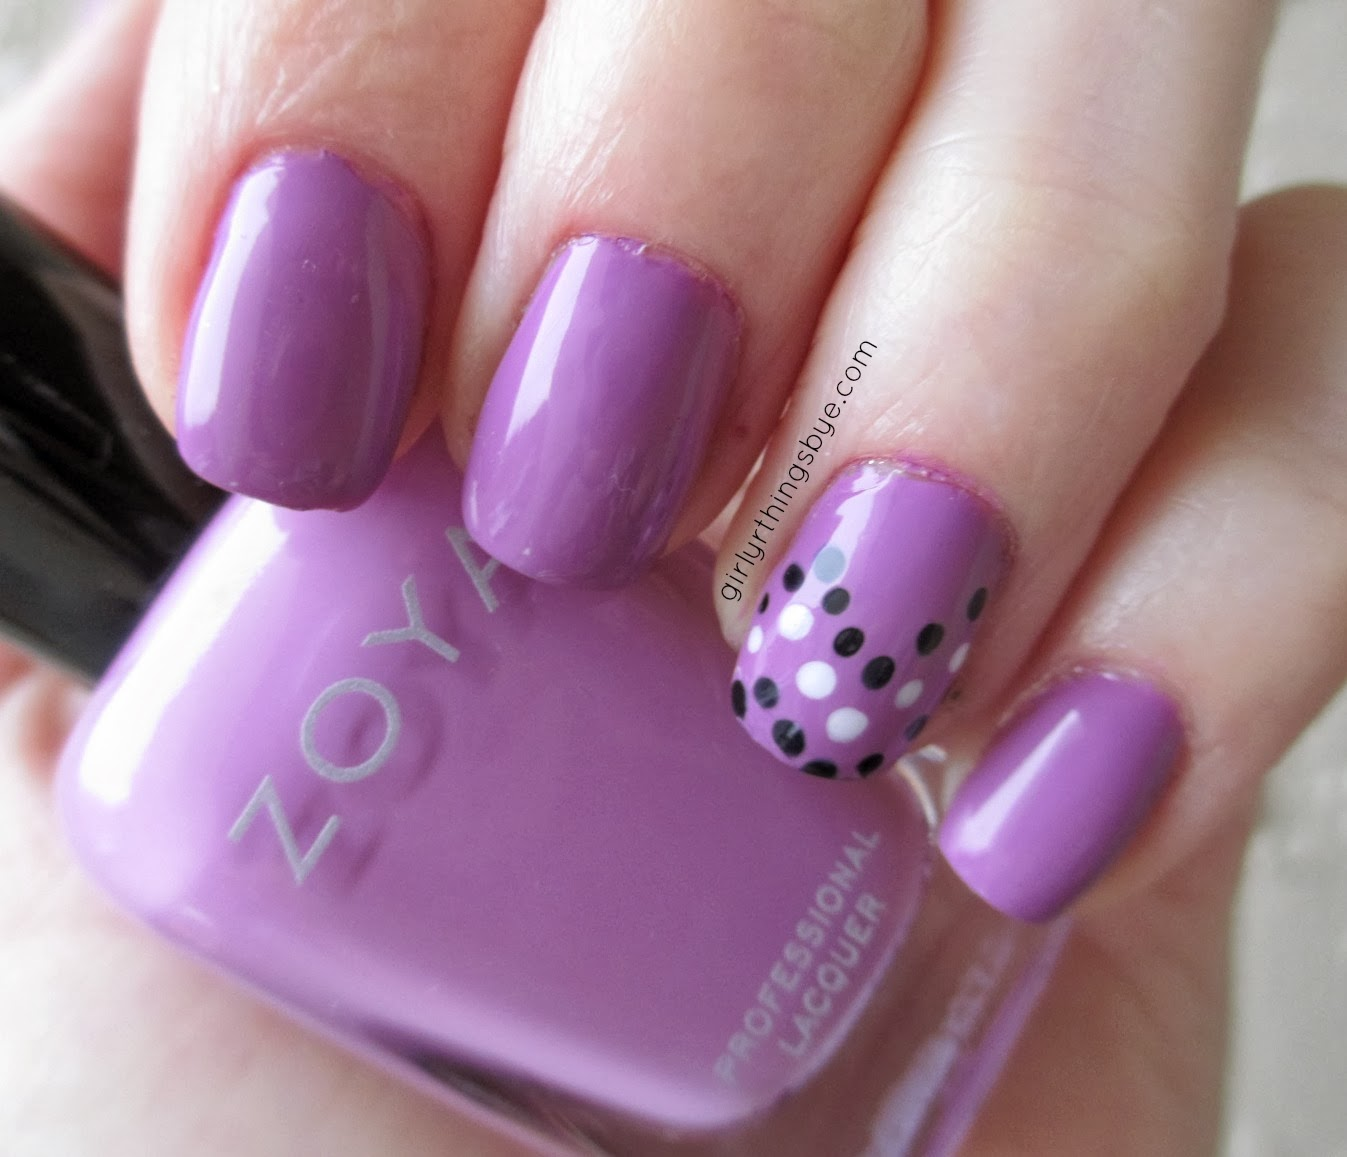 Zoya Perrie, swatch, radiant orchid, @girlythingsby_e